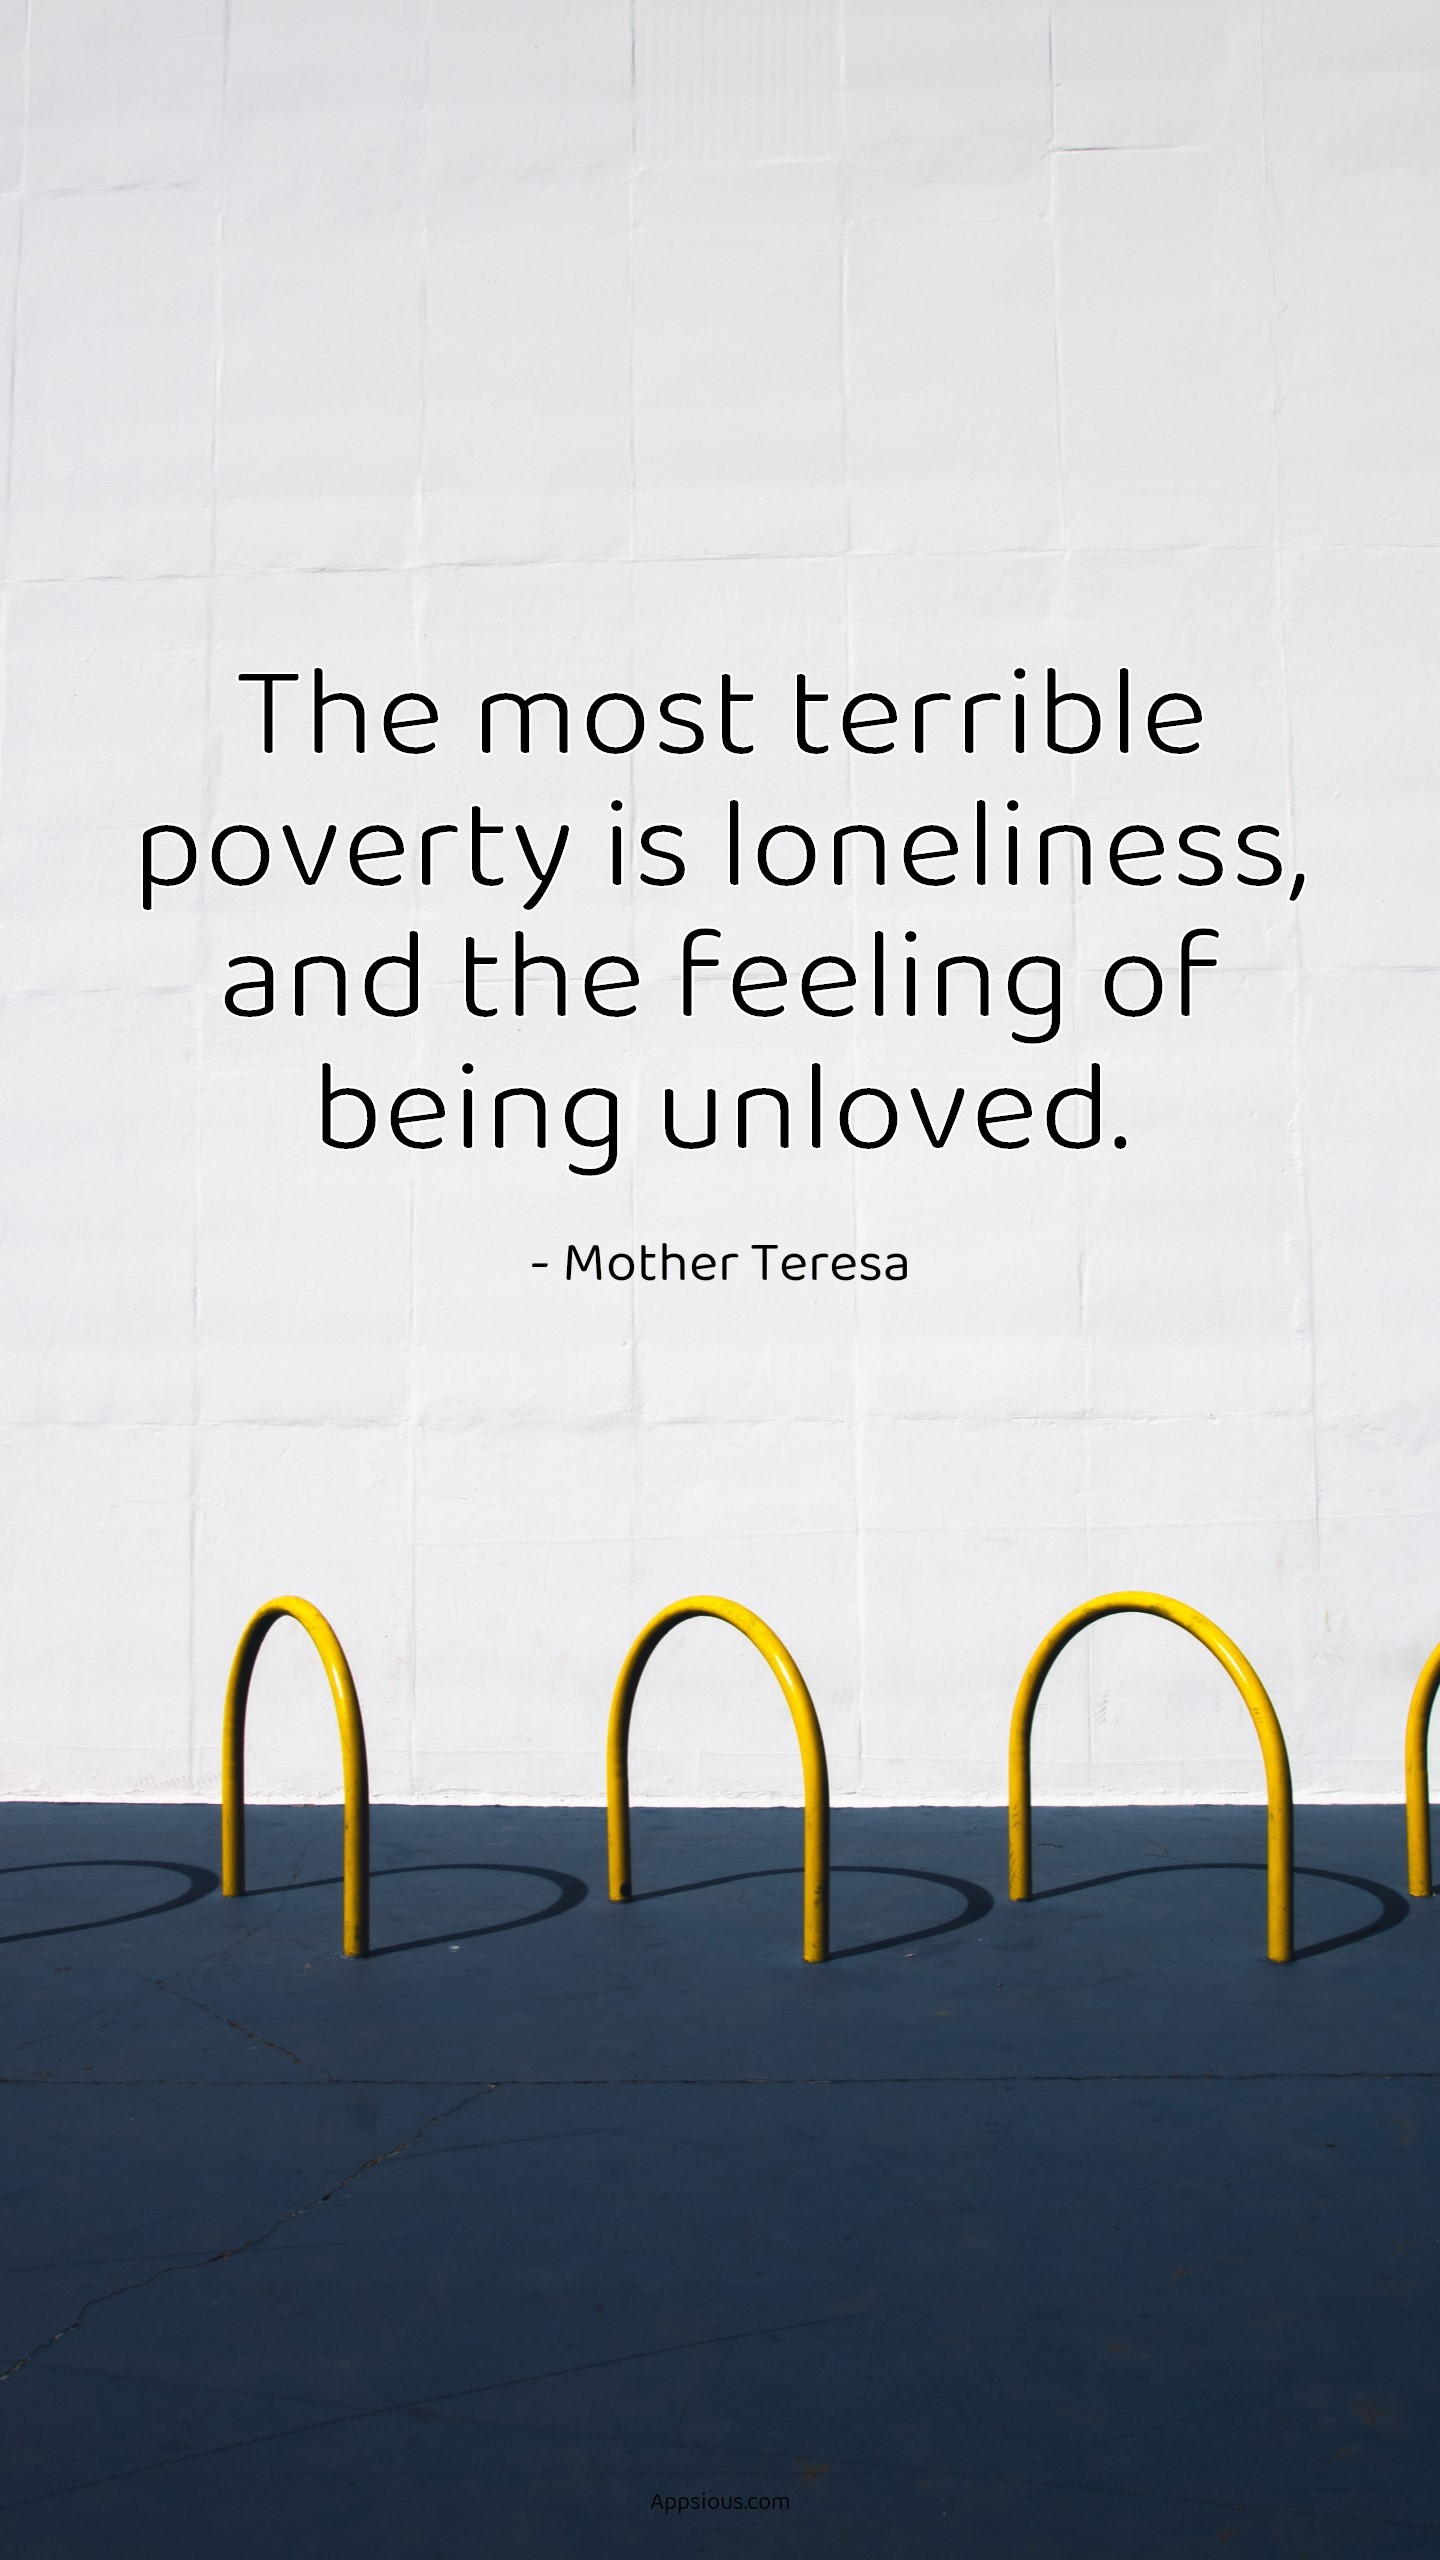 The most terrible poverty is loneliness, and the feeling of being unloved.